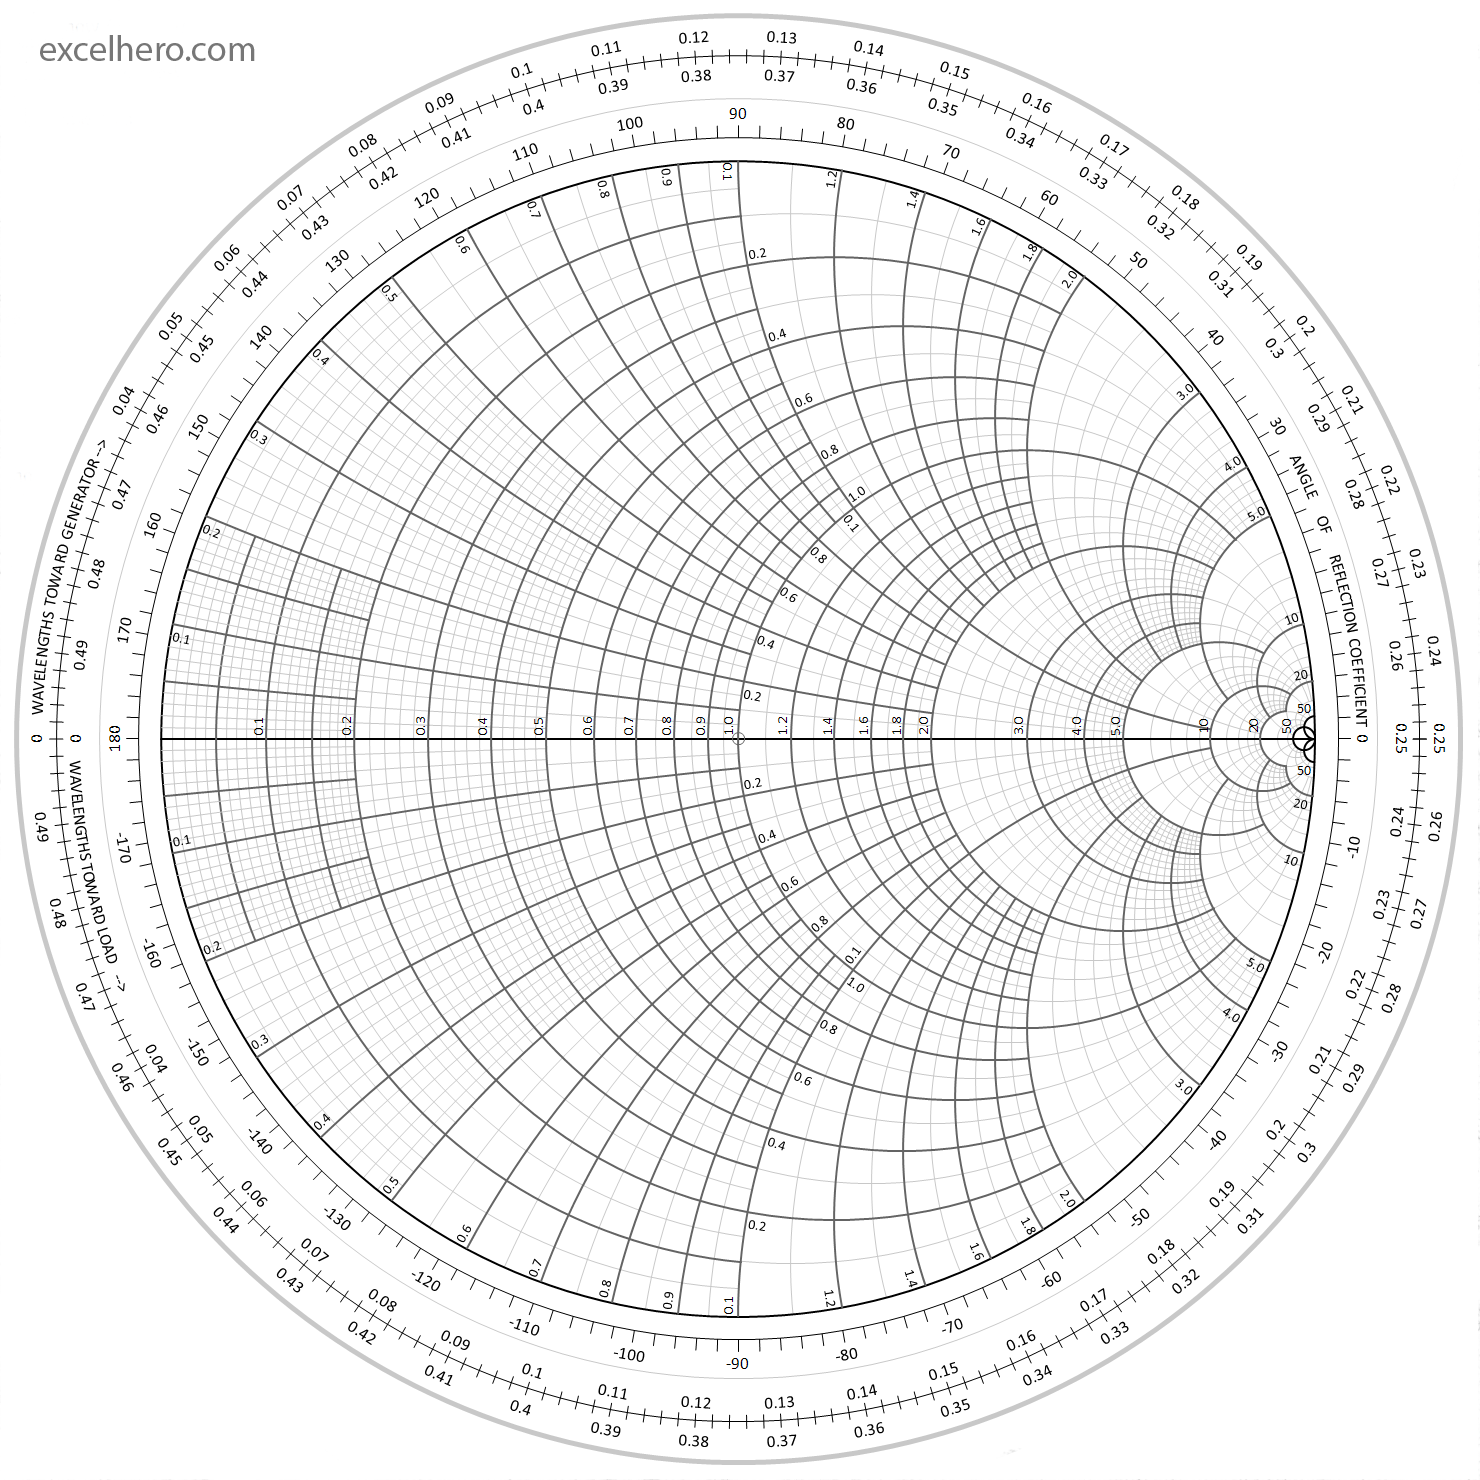 smith_chart_small_size_excelhero.com.png